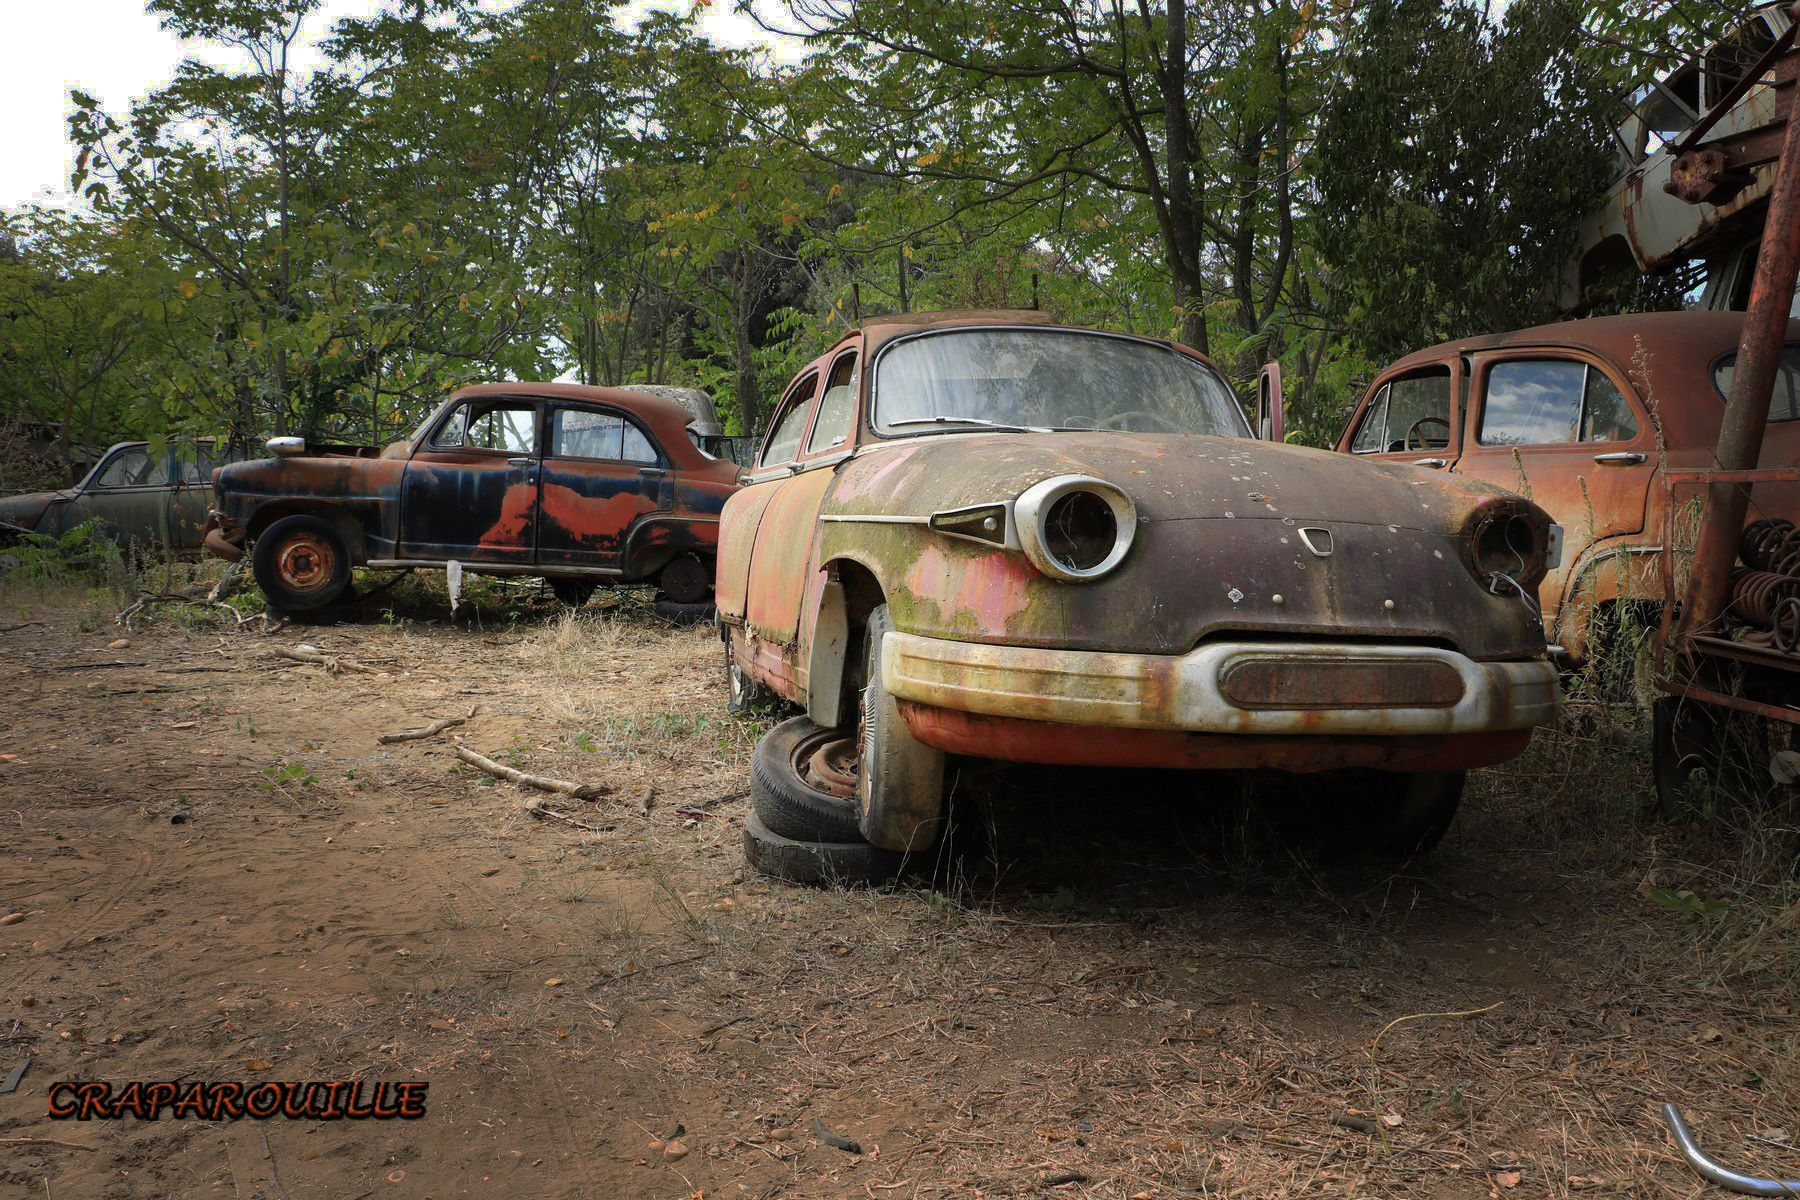 Photography-Diamonds-in-Rust-Craparouille-83